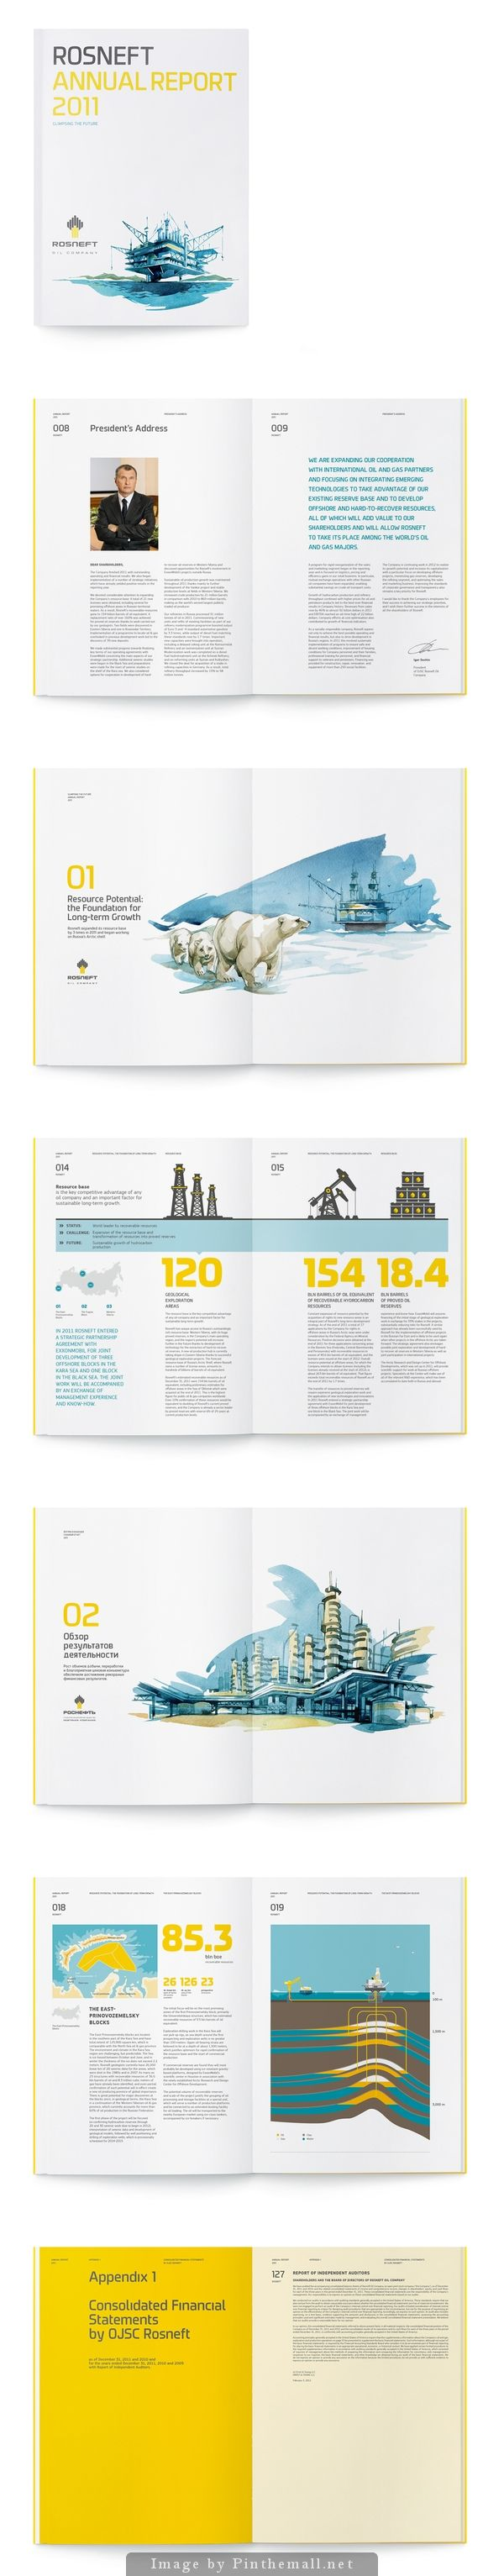 Infographics in the 2011 Rosneft Annual Report